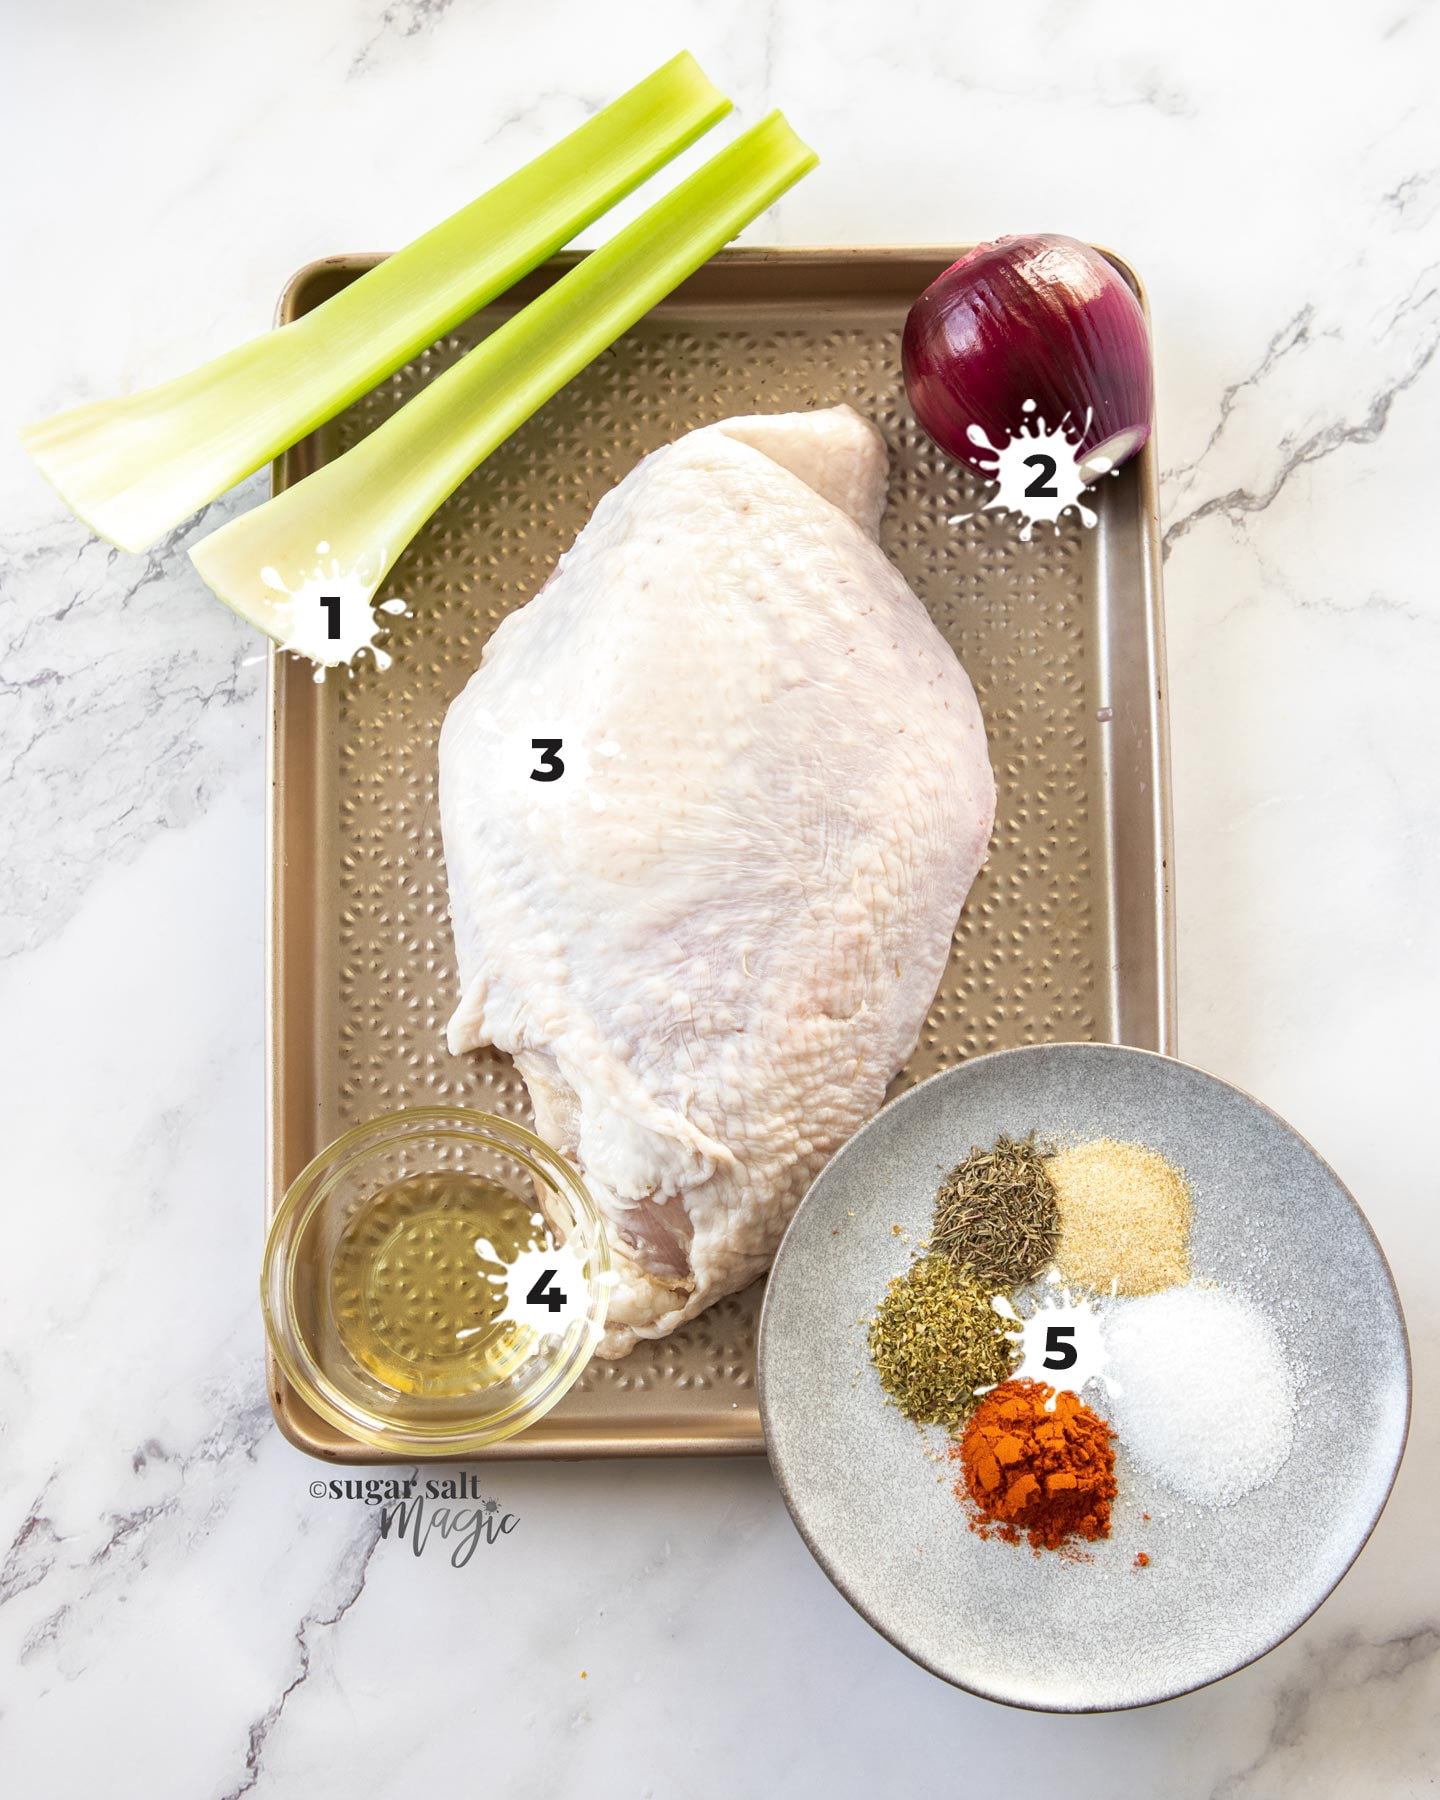 Ingredients for slow cooker turkey breast on a gold baking tray